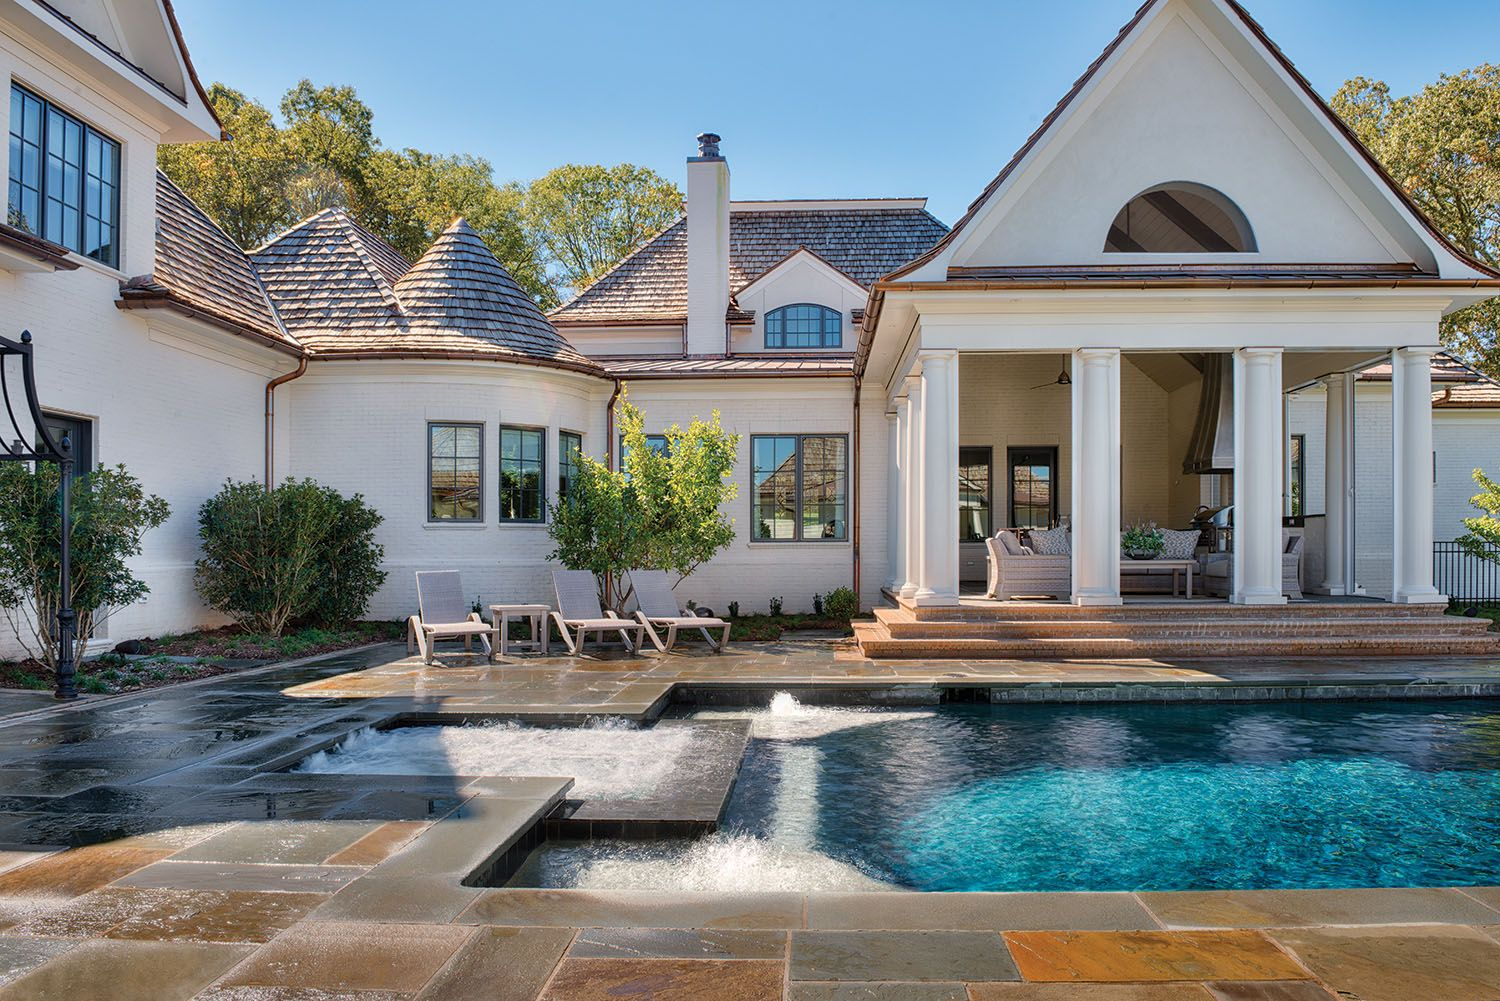 The New French Country   Rear View With Pool  Manor Born U2013 Carolina Home +